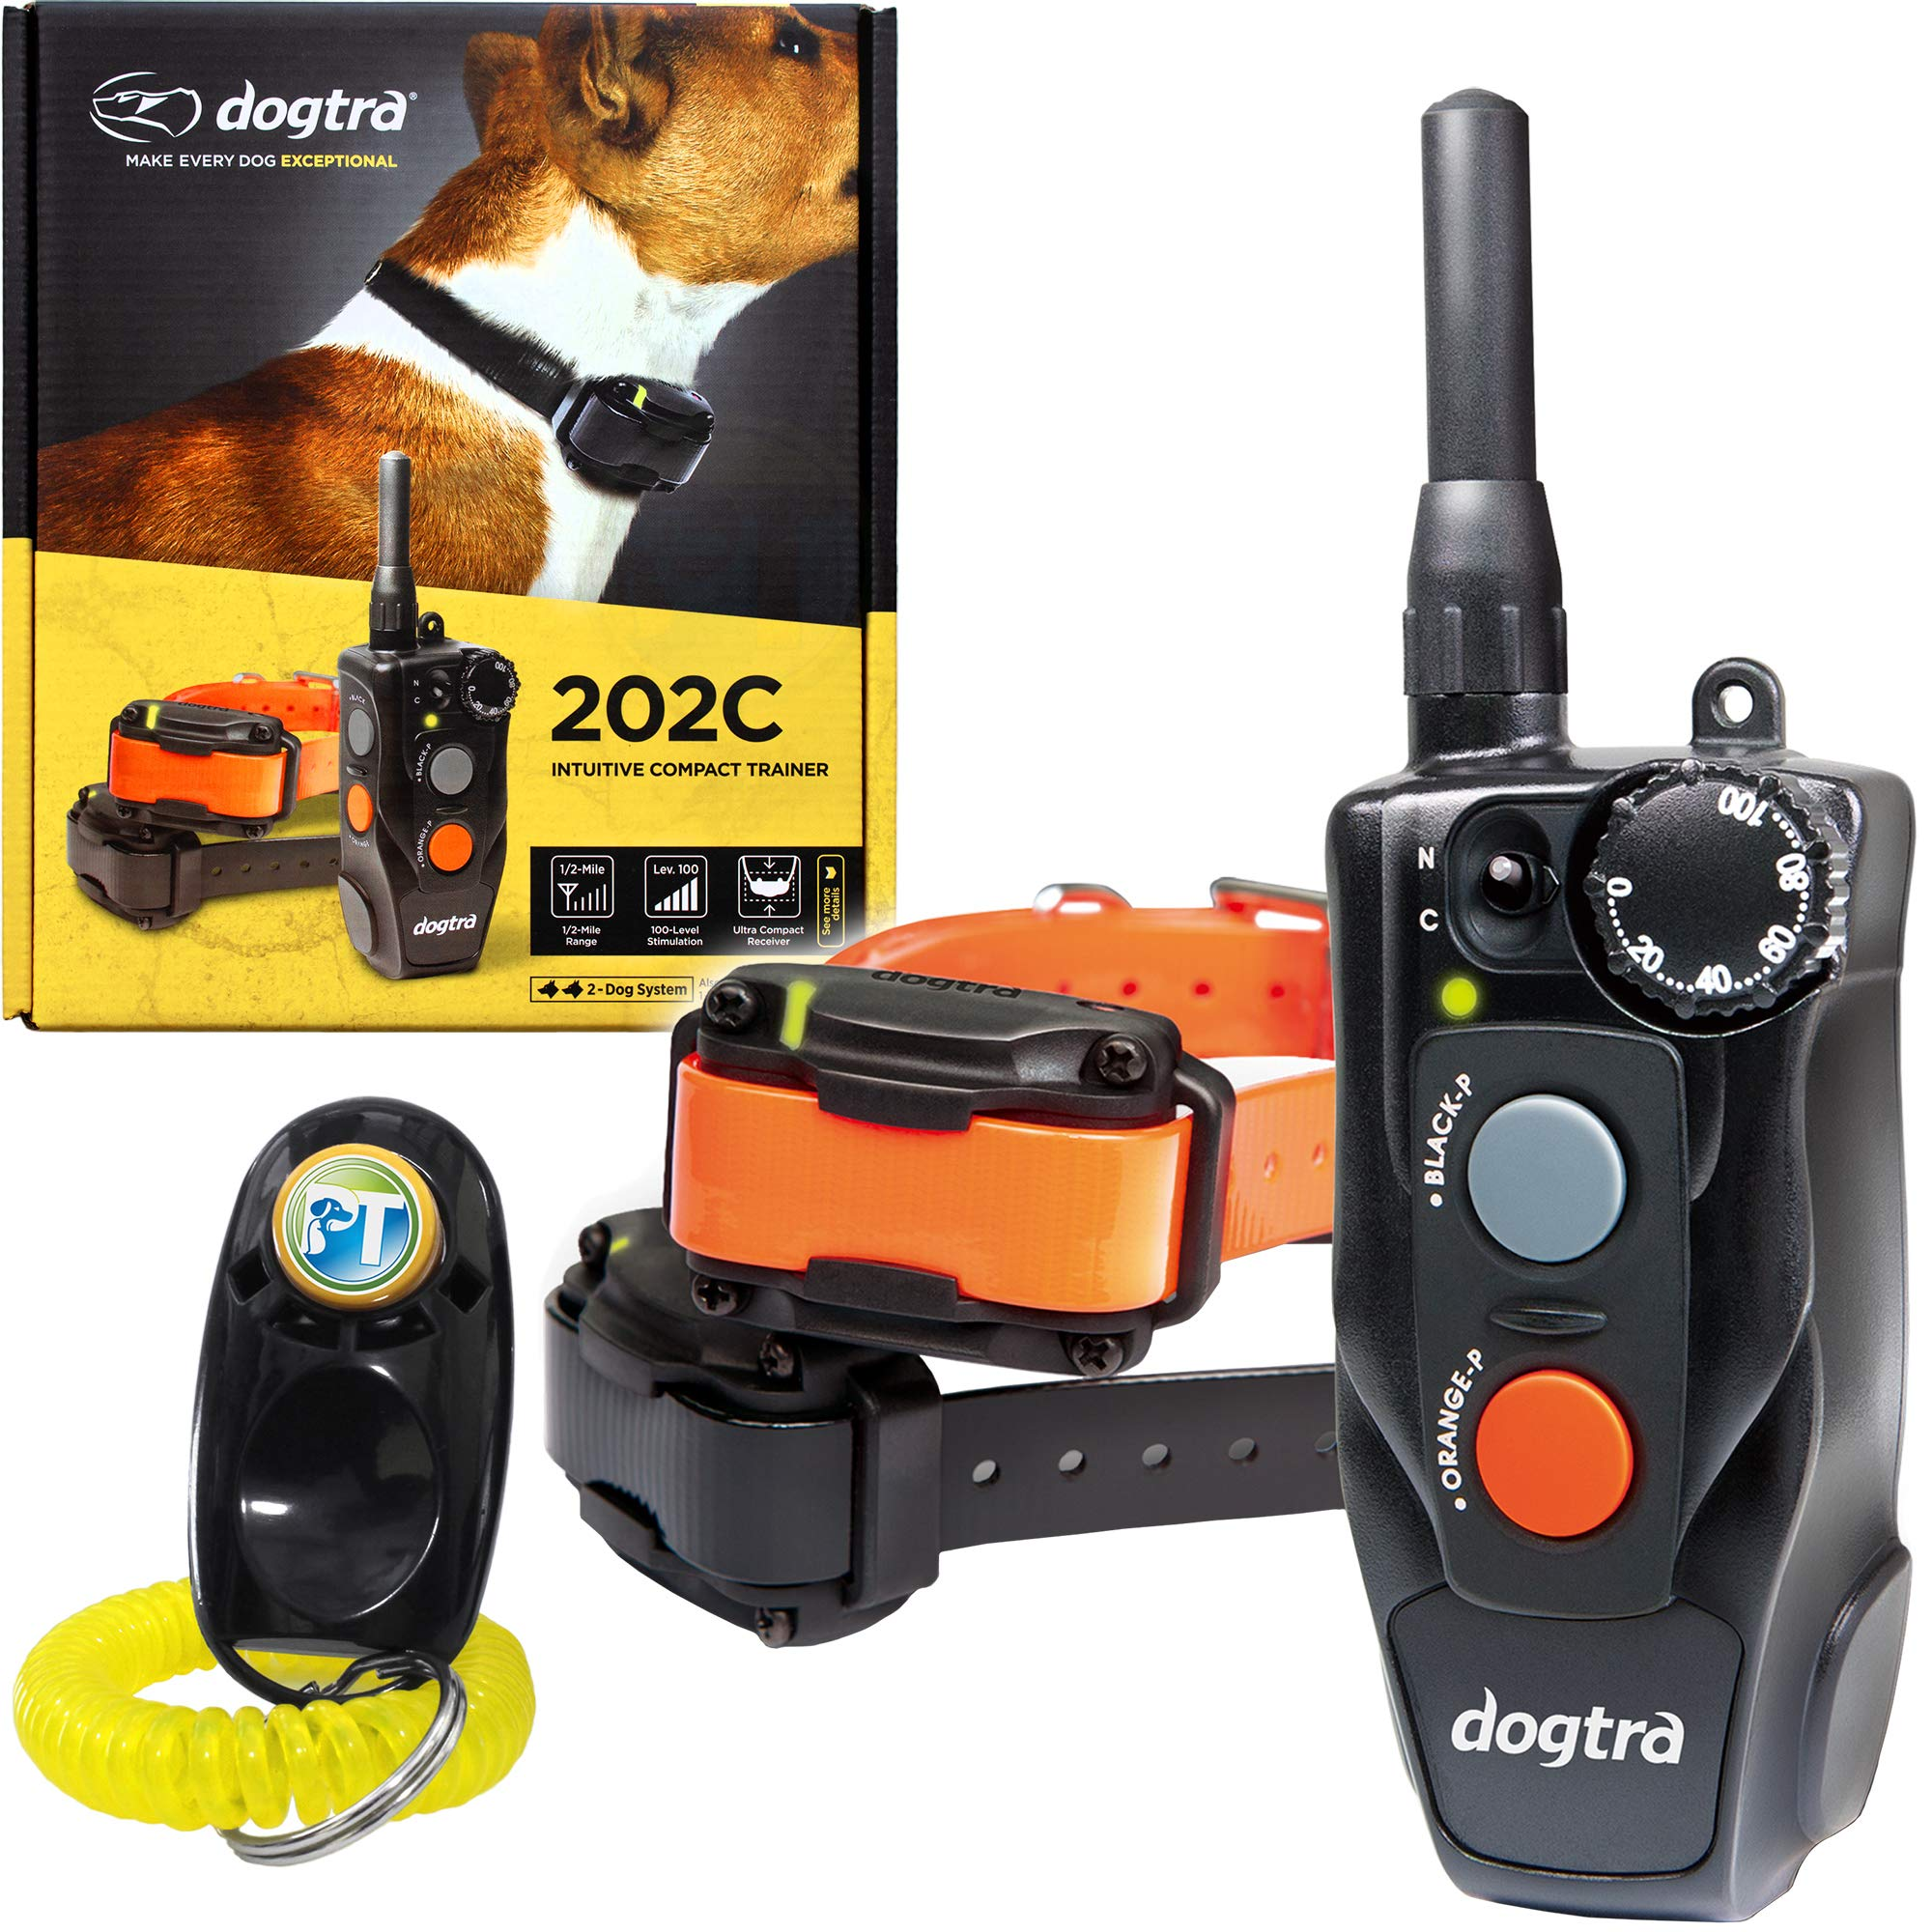 Dogtra 202C Two Dogs Remote Training Collar - 1/2 Mile Range, Waterproof, Rechargeable, Shock, Vibration - Includes PetsTEK Dog Training Clicker